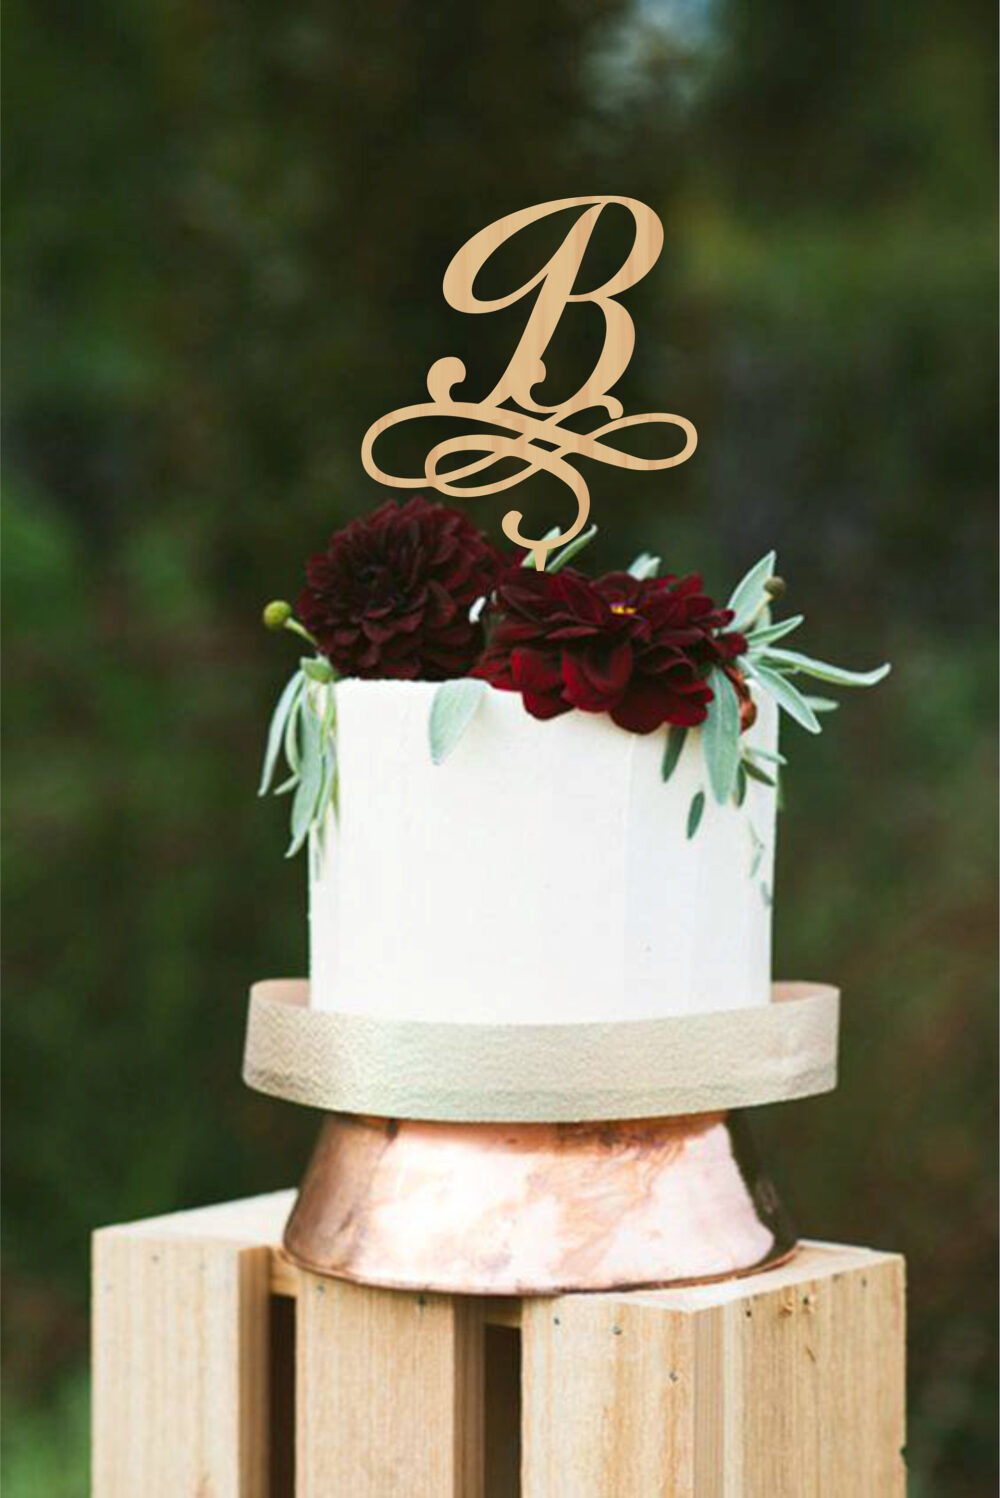 Initial Wedding Cake Topper, B Letter Toppers For Wedding, Monogram Cake Topper, Rustic Topper